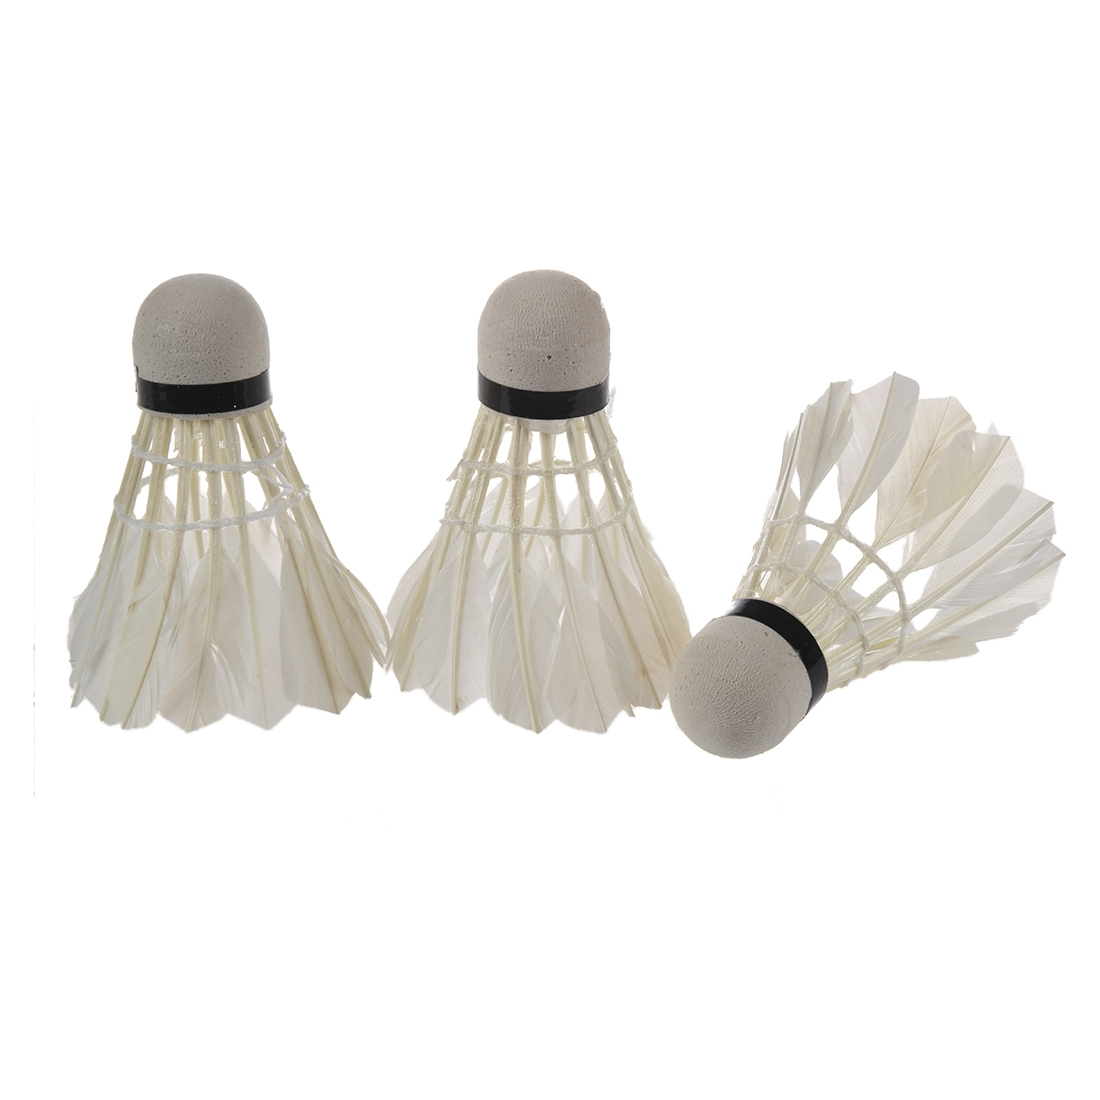 New Sale White Goose Feather Badminton Shuttlecock 3pcs W Carboard Cylinder